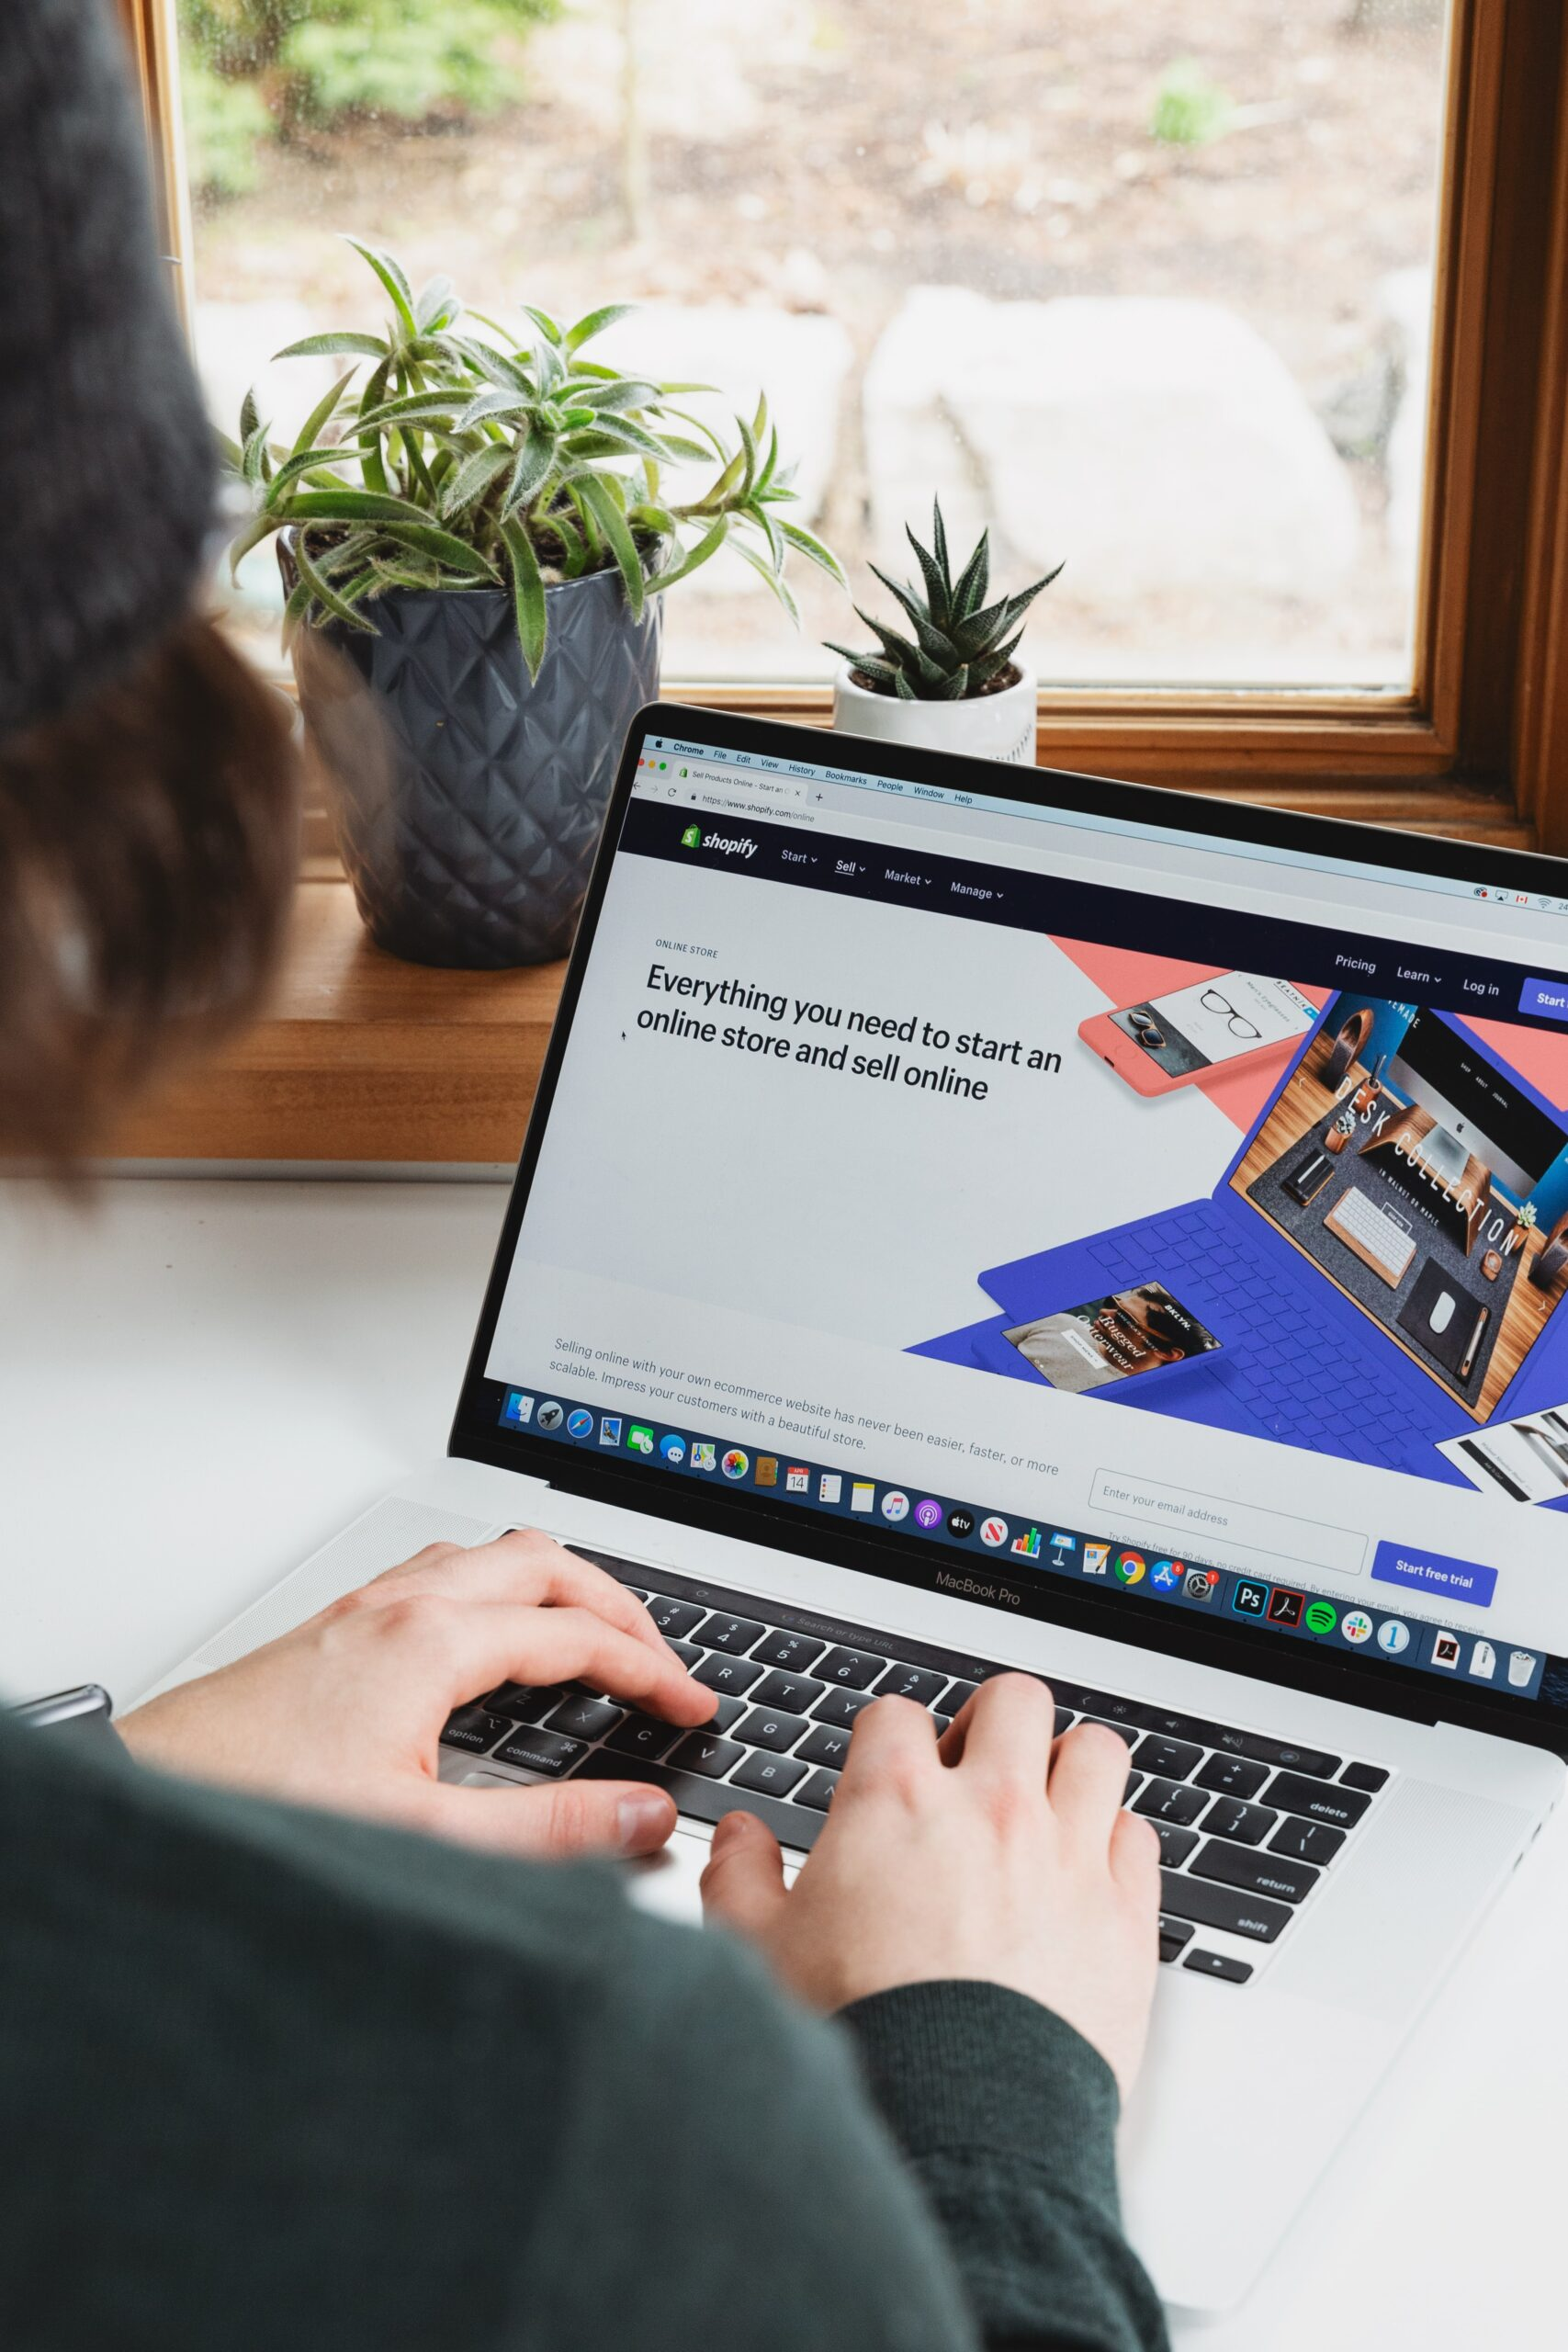 shopify site on laptop screen